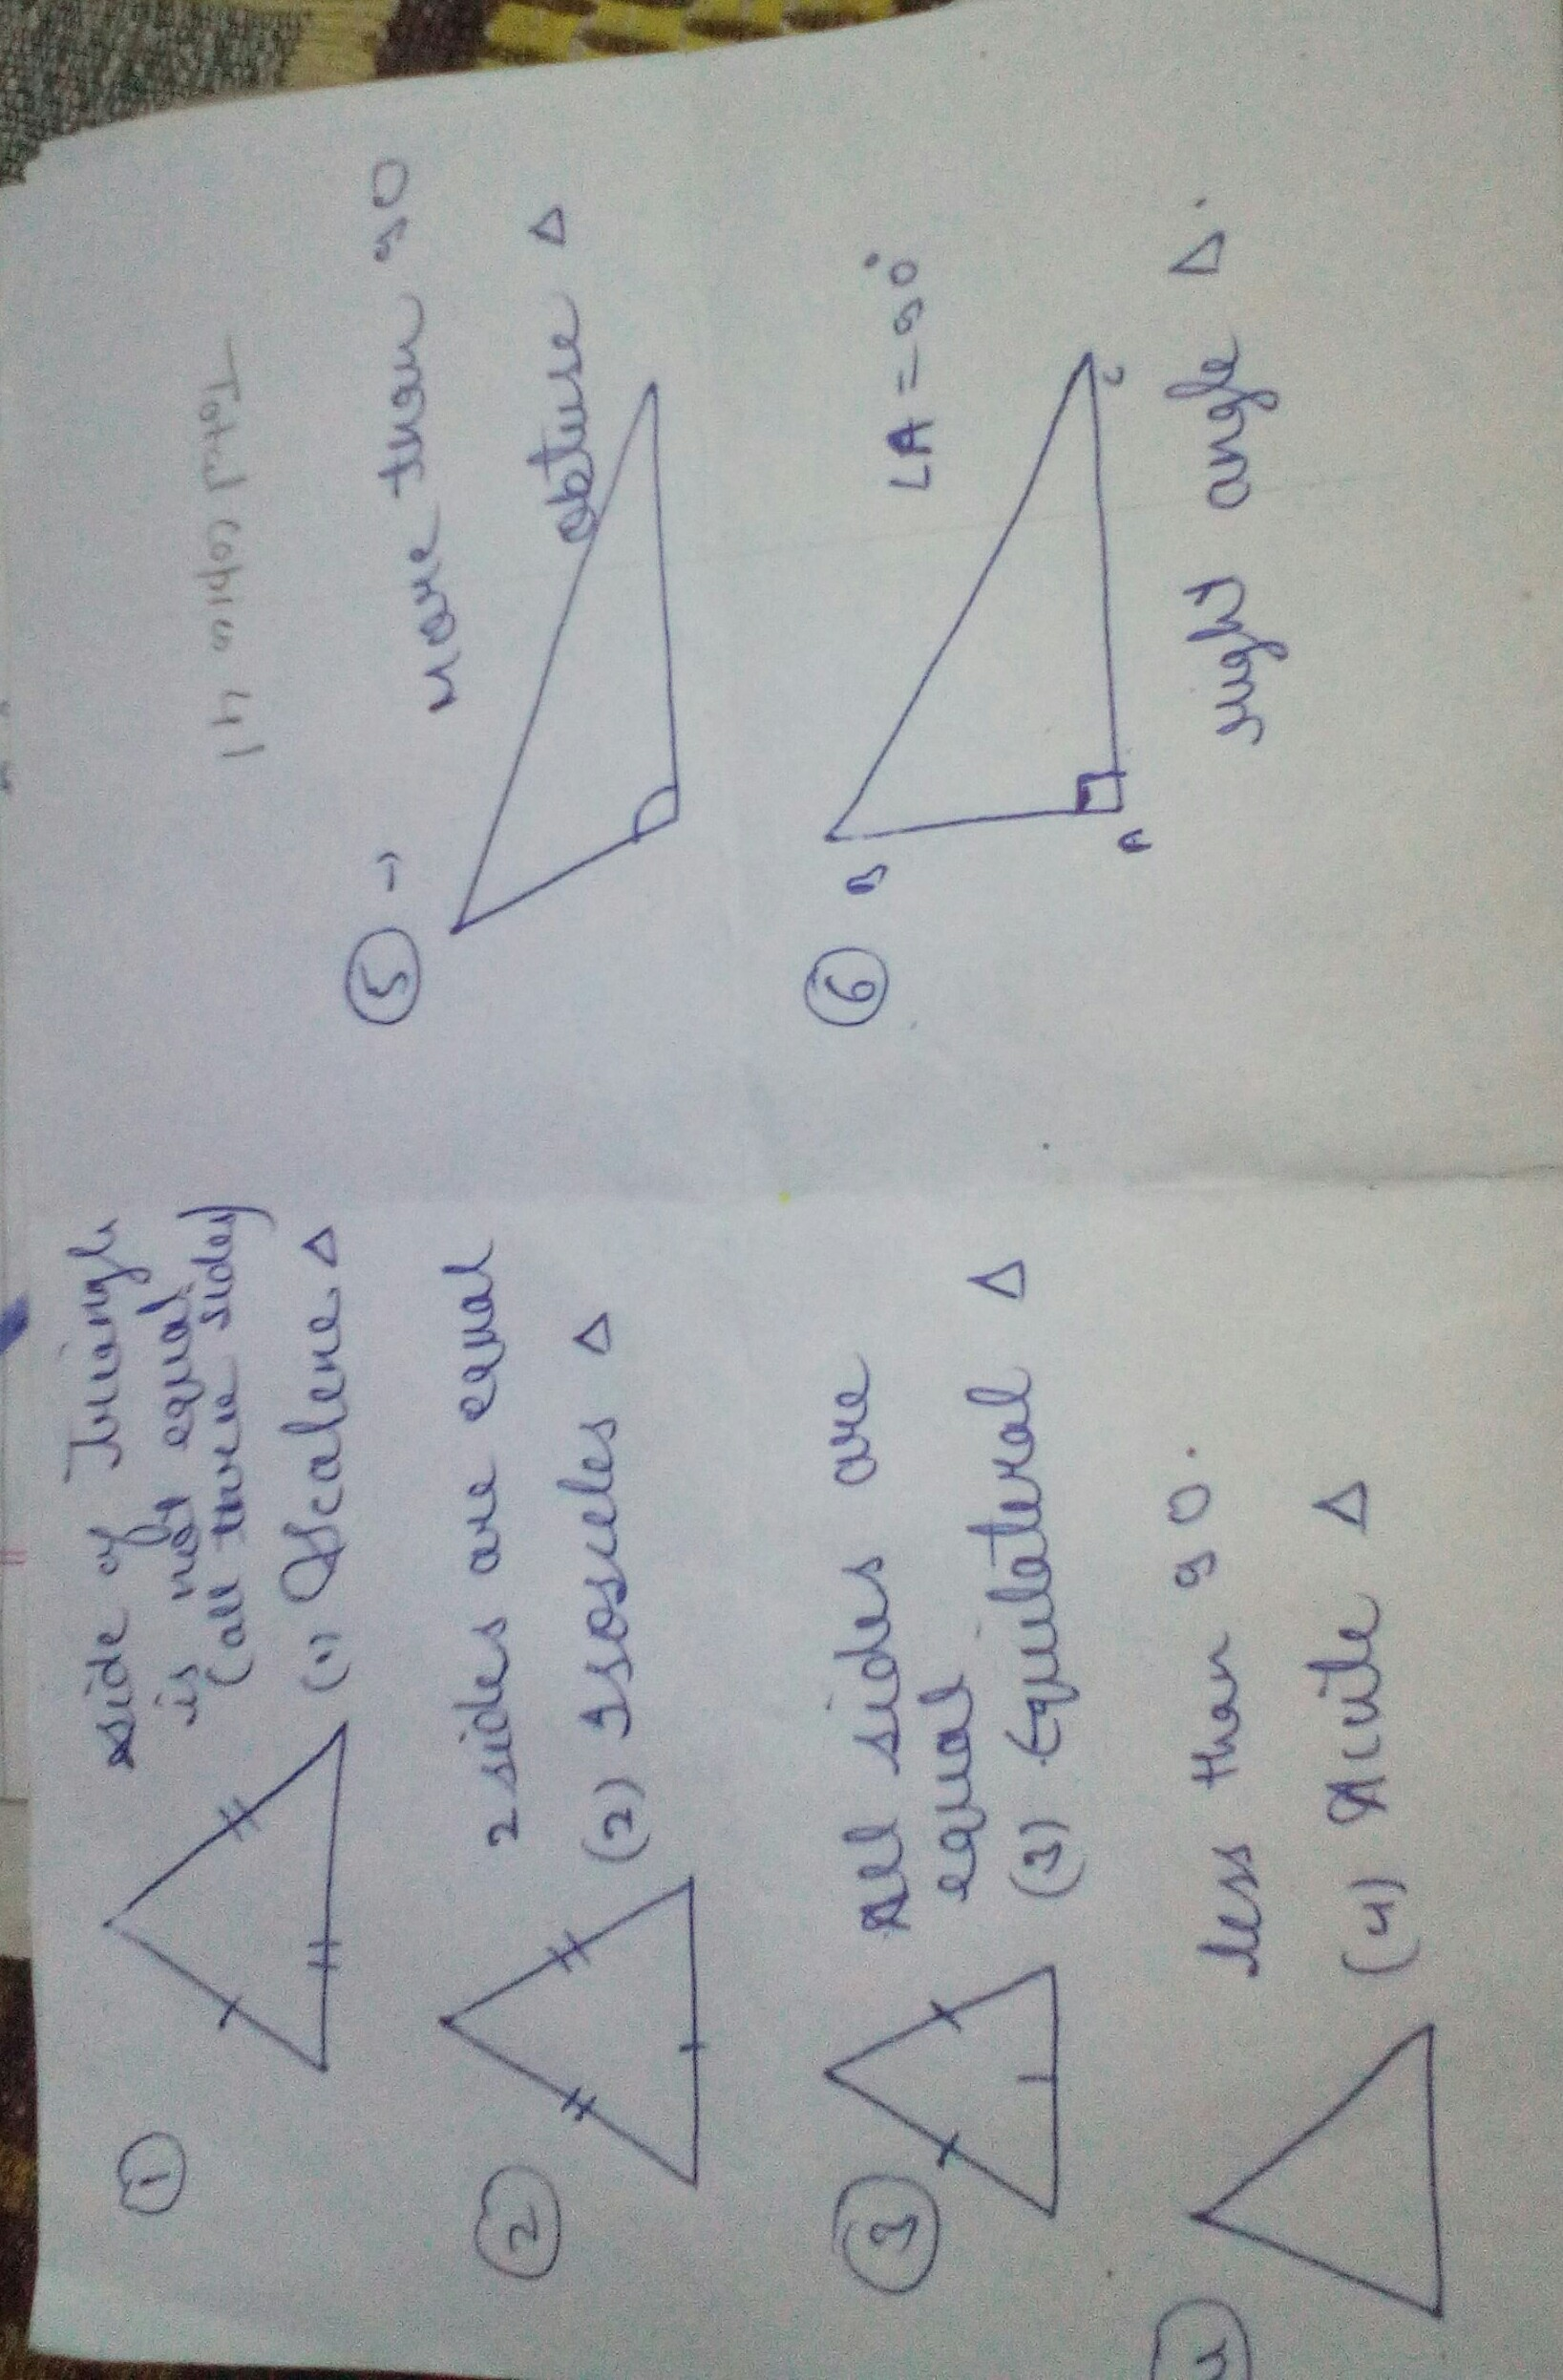 Construct These Triangles 1 Scalene 2 Isosceles 3